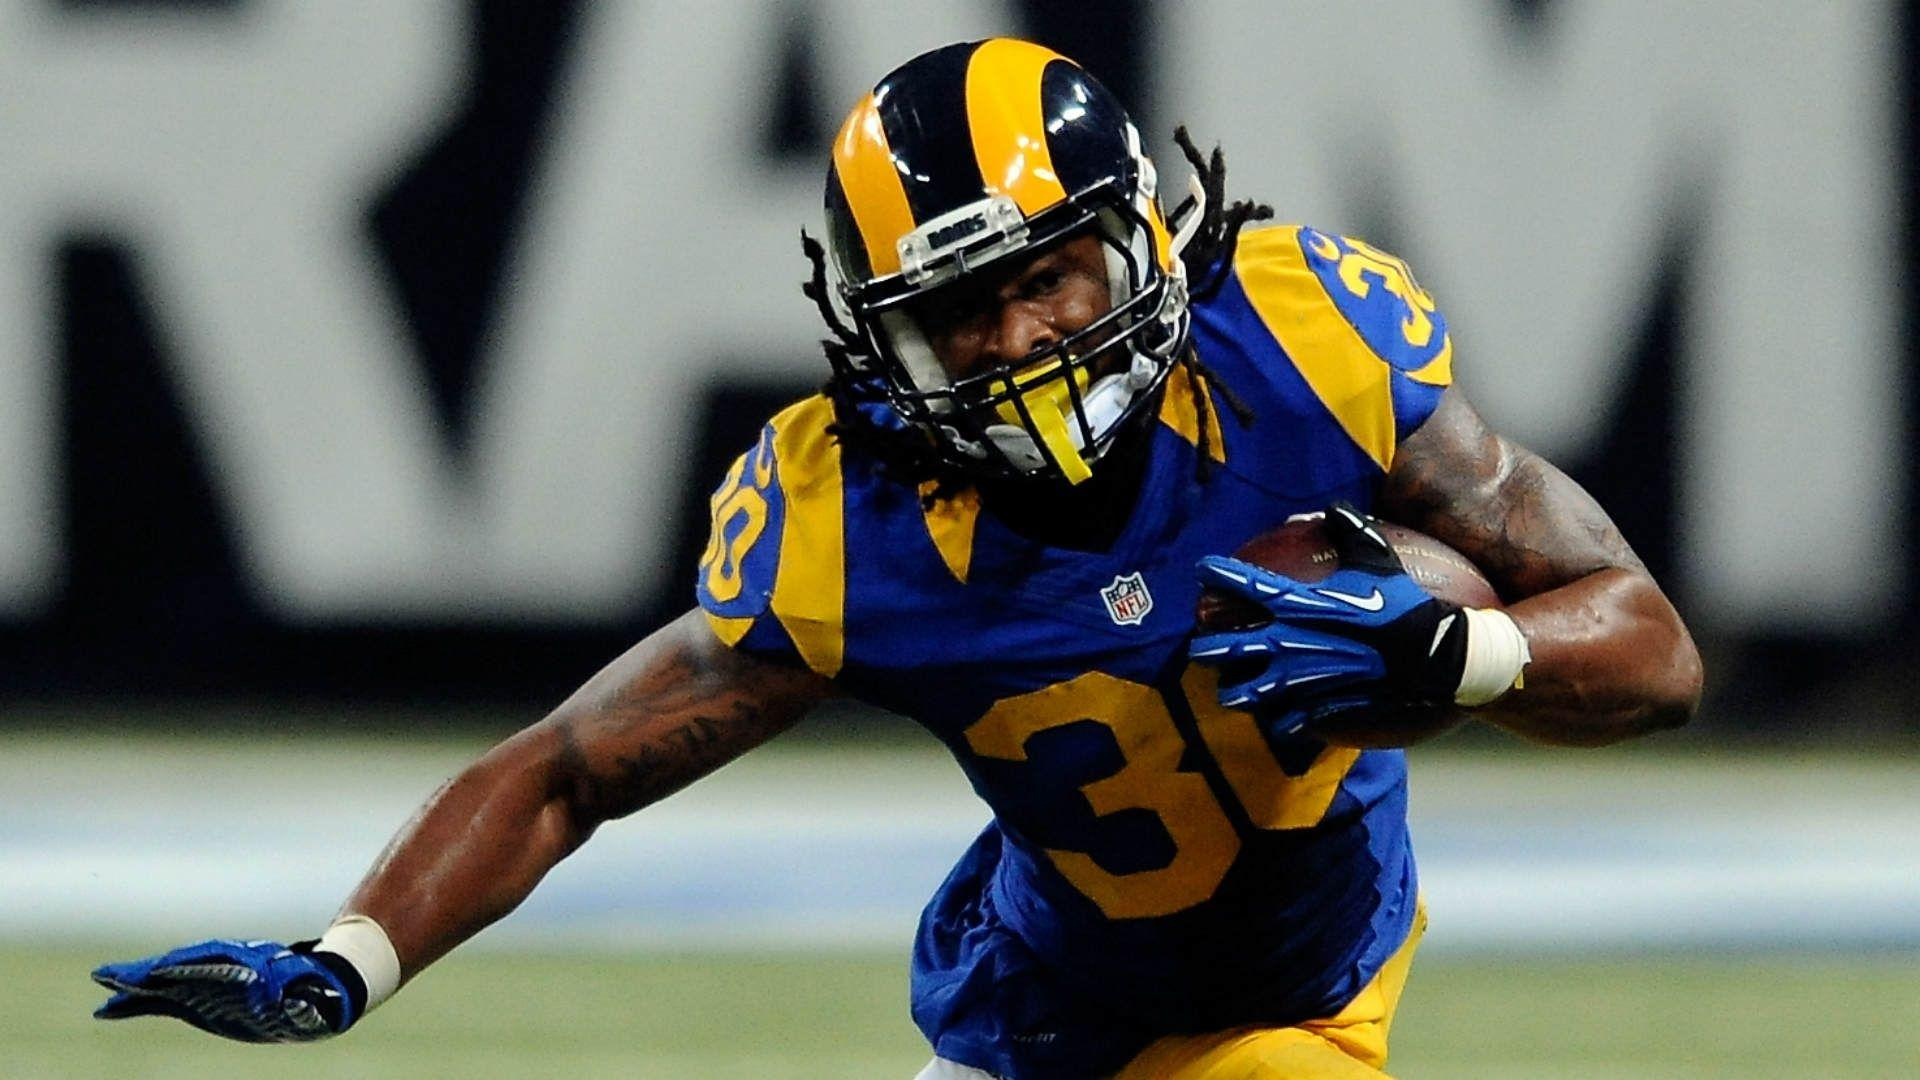 Sporting News NFL Rookie of the Year: Todd Gurley rescuing Rams